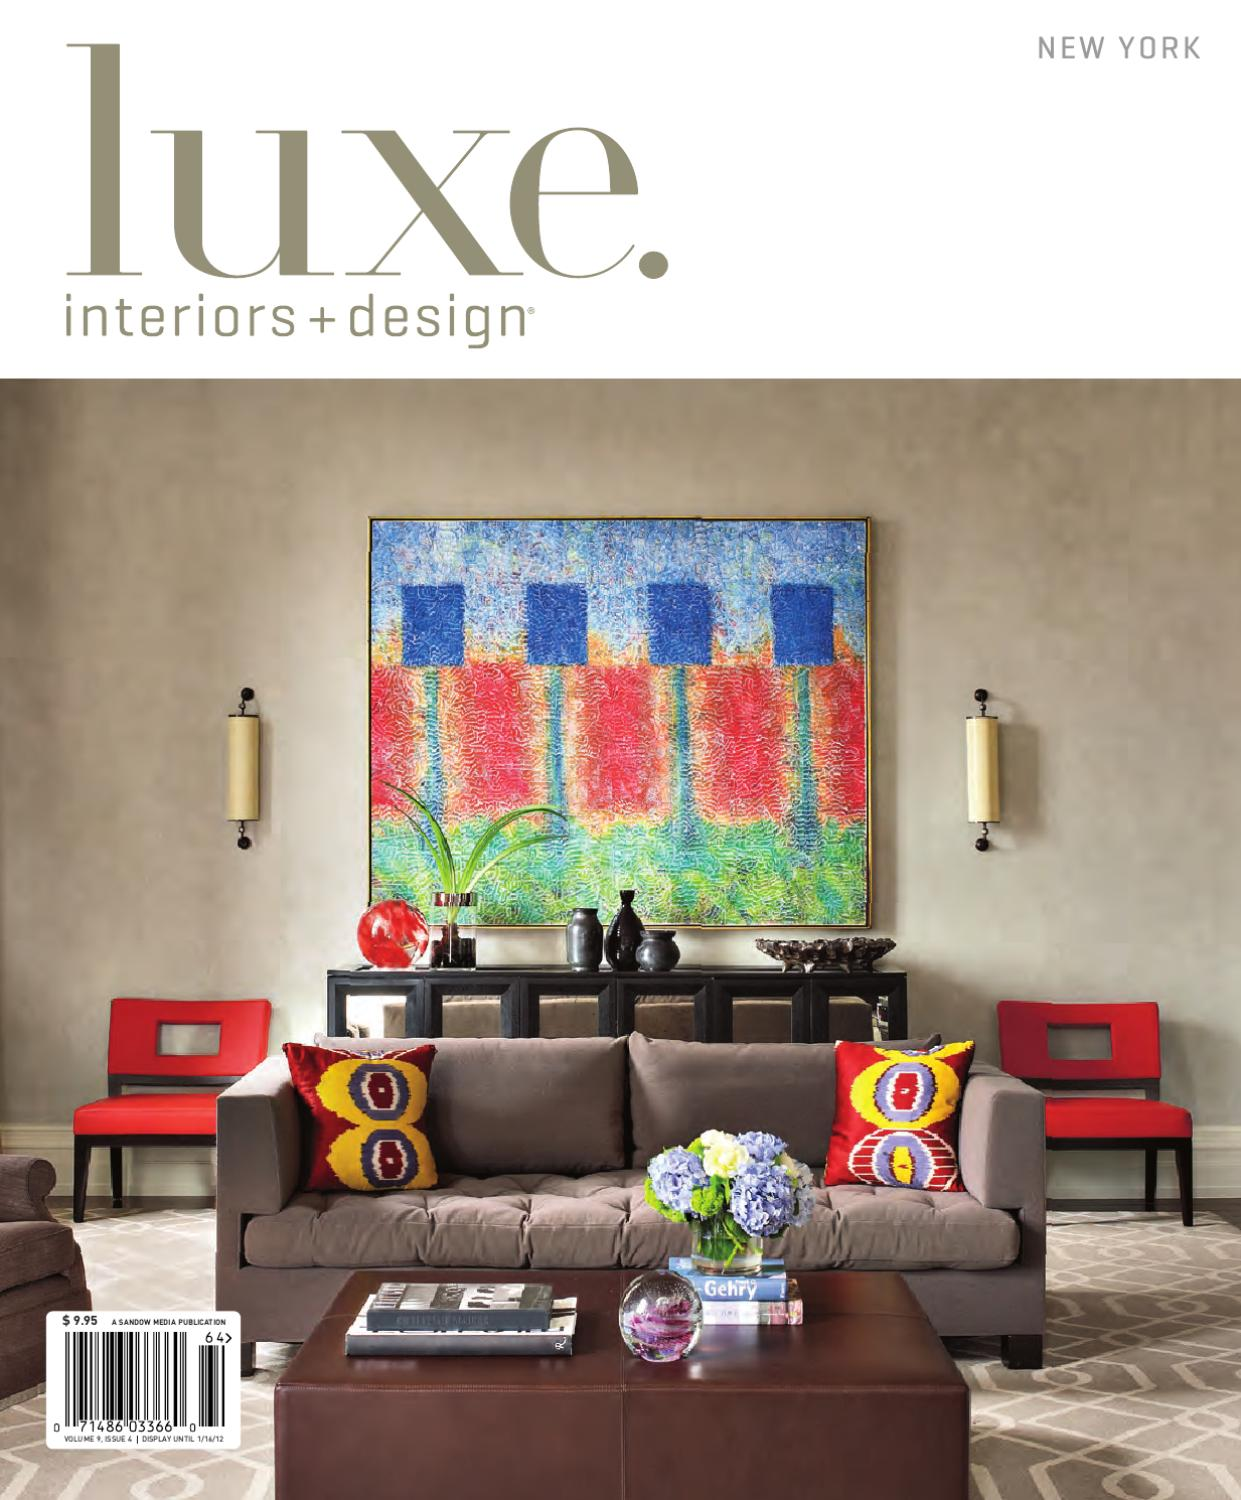 Issuu luxe interiors design ny 3 by sandow media for Luxe furniture and design